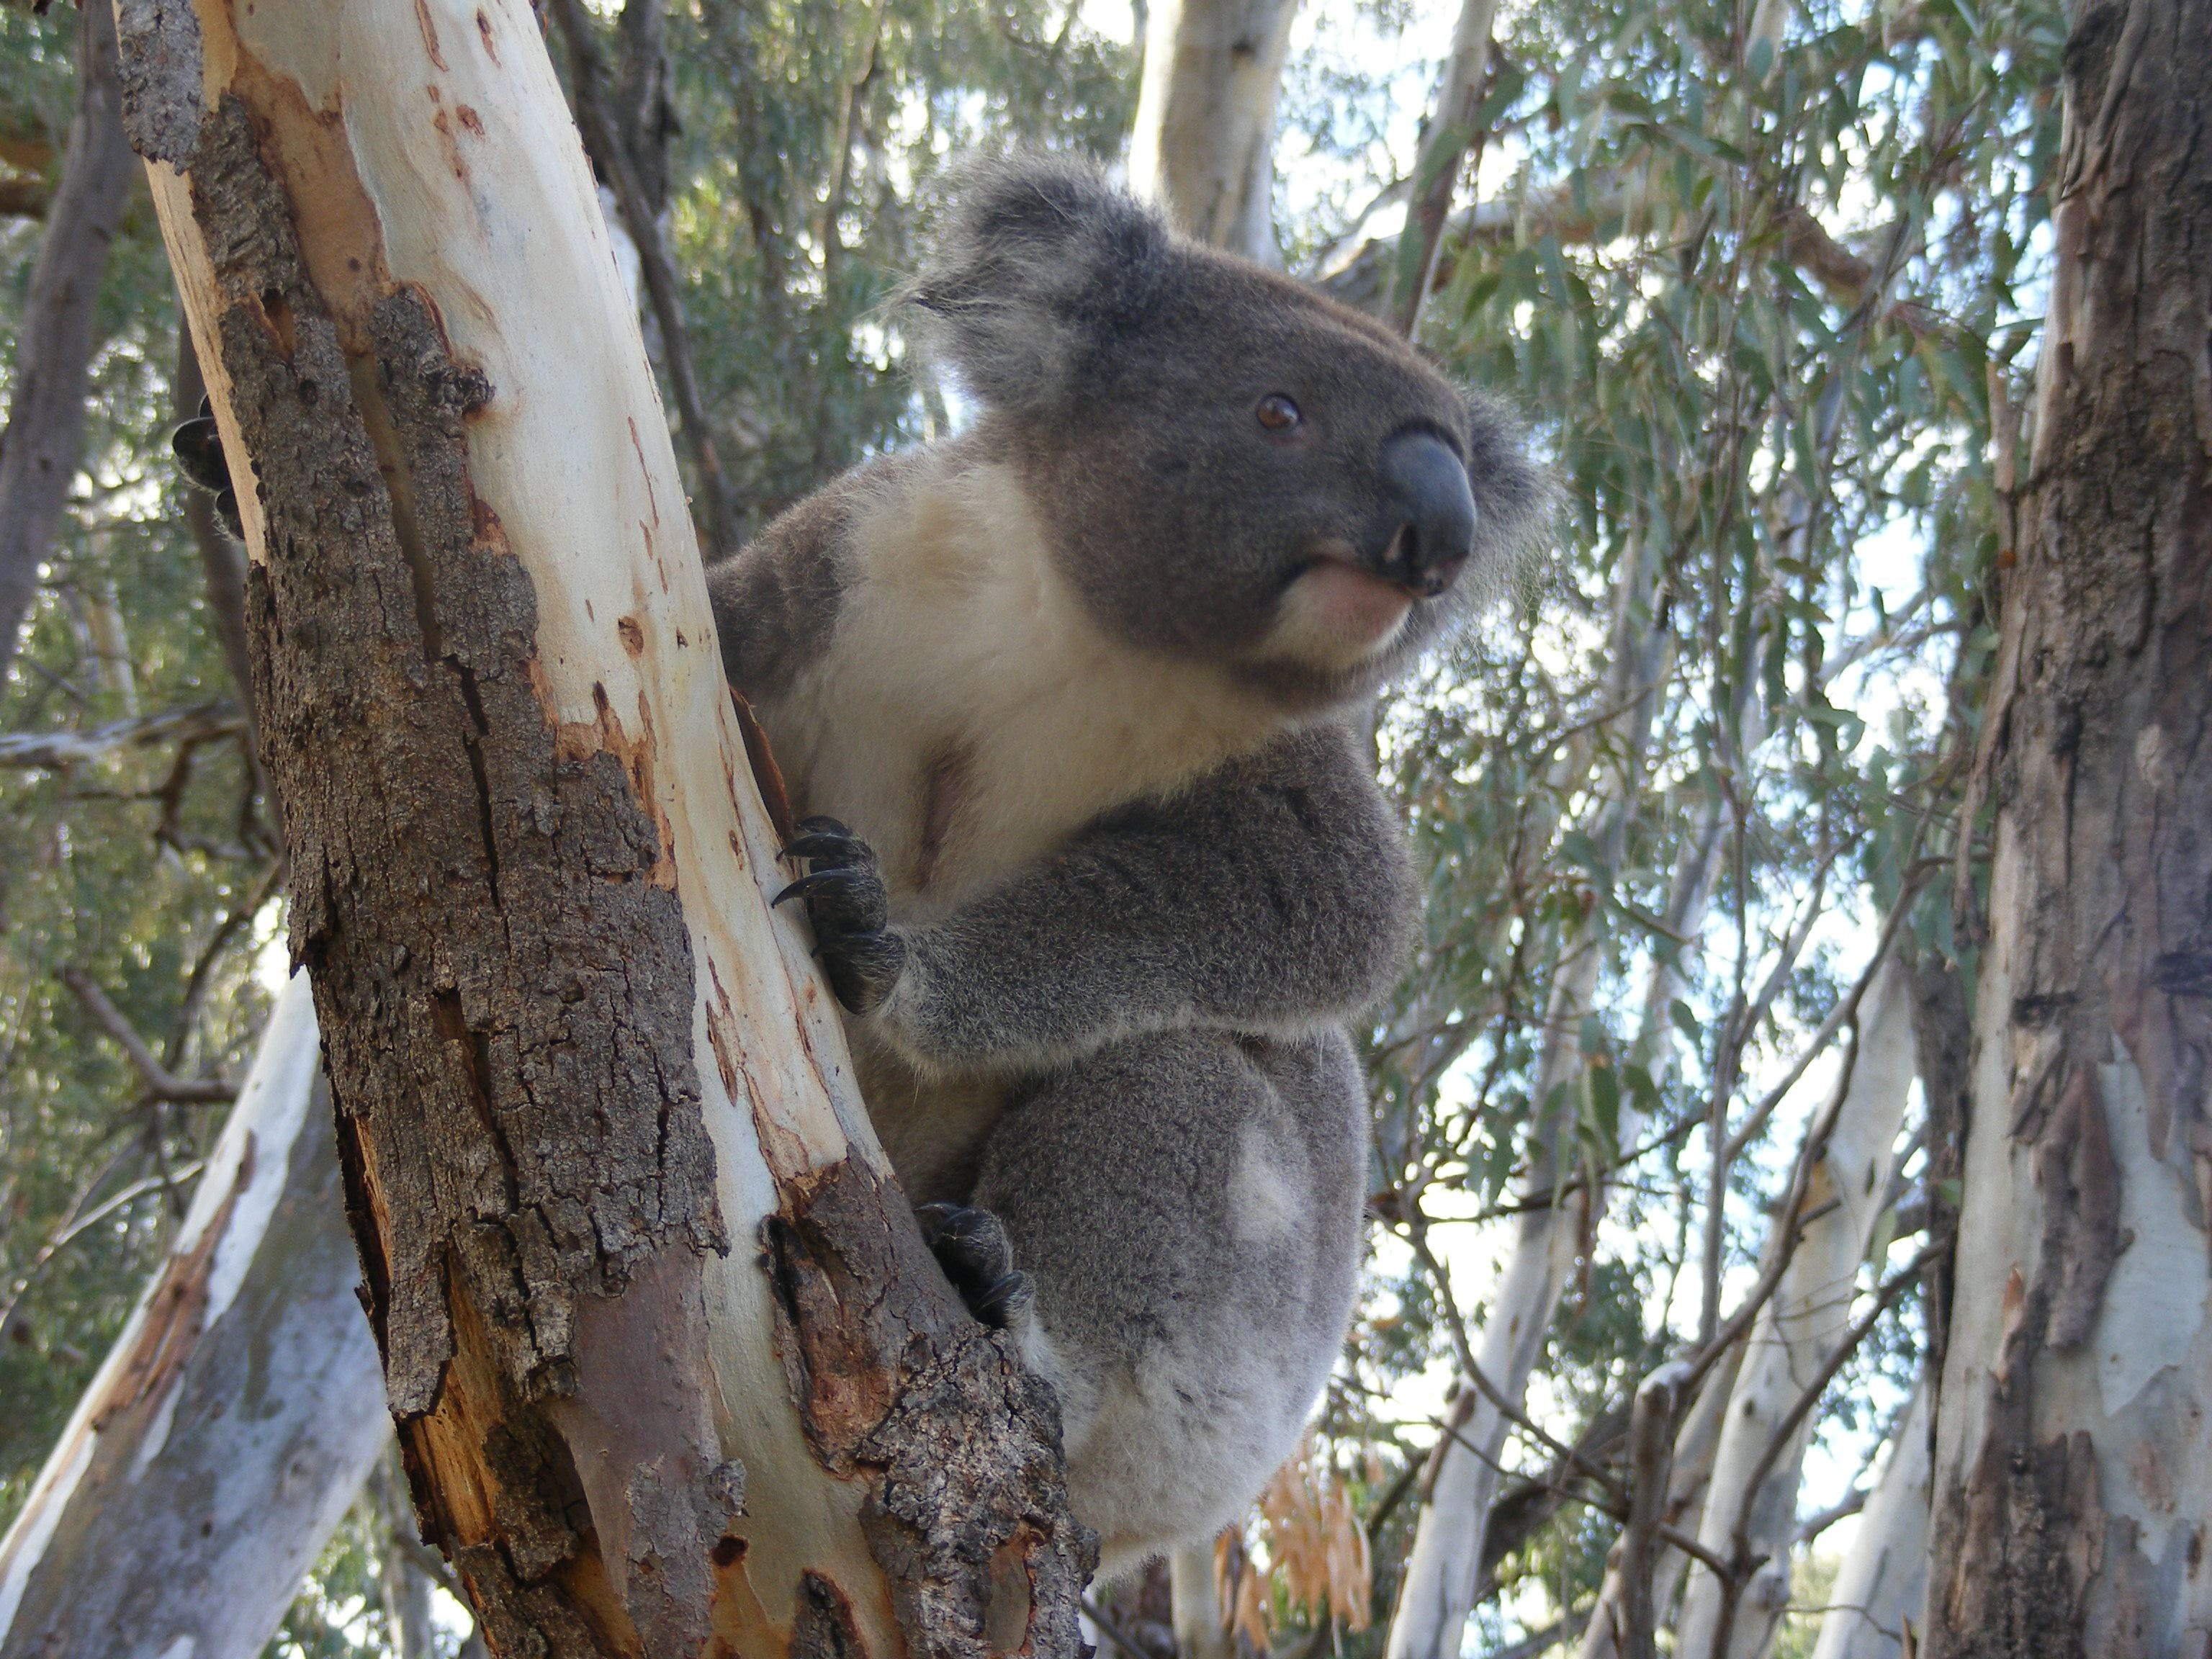 Annual Koala Count - Accommodation Resorts